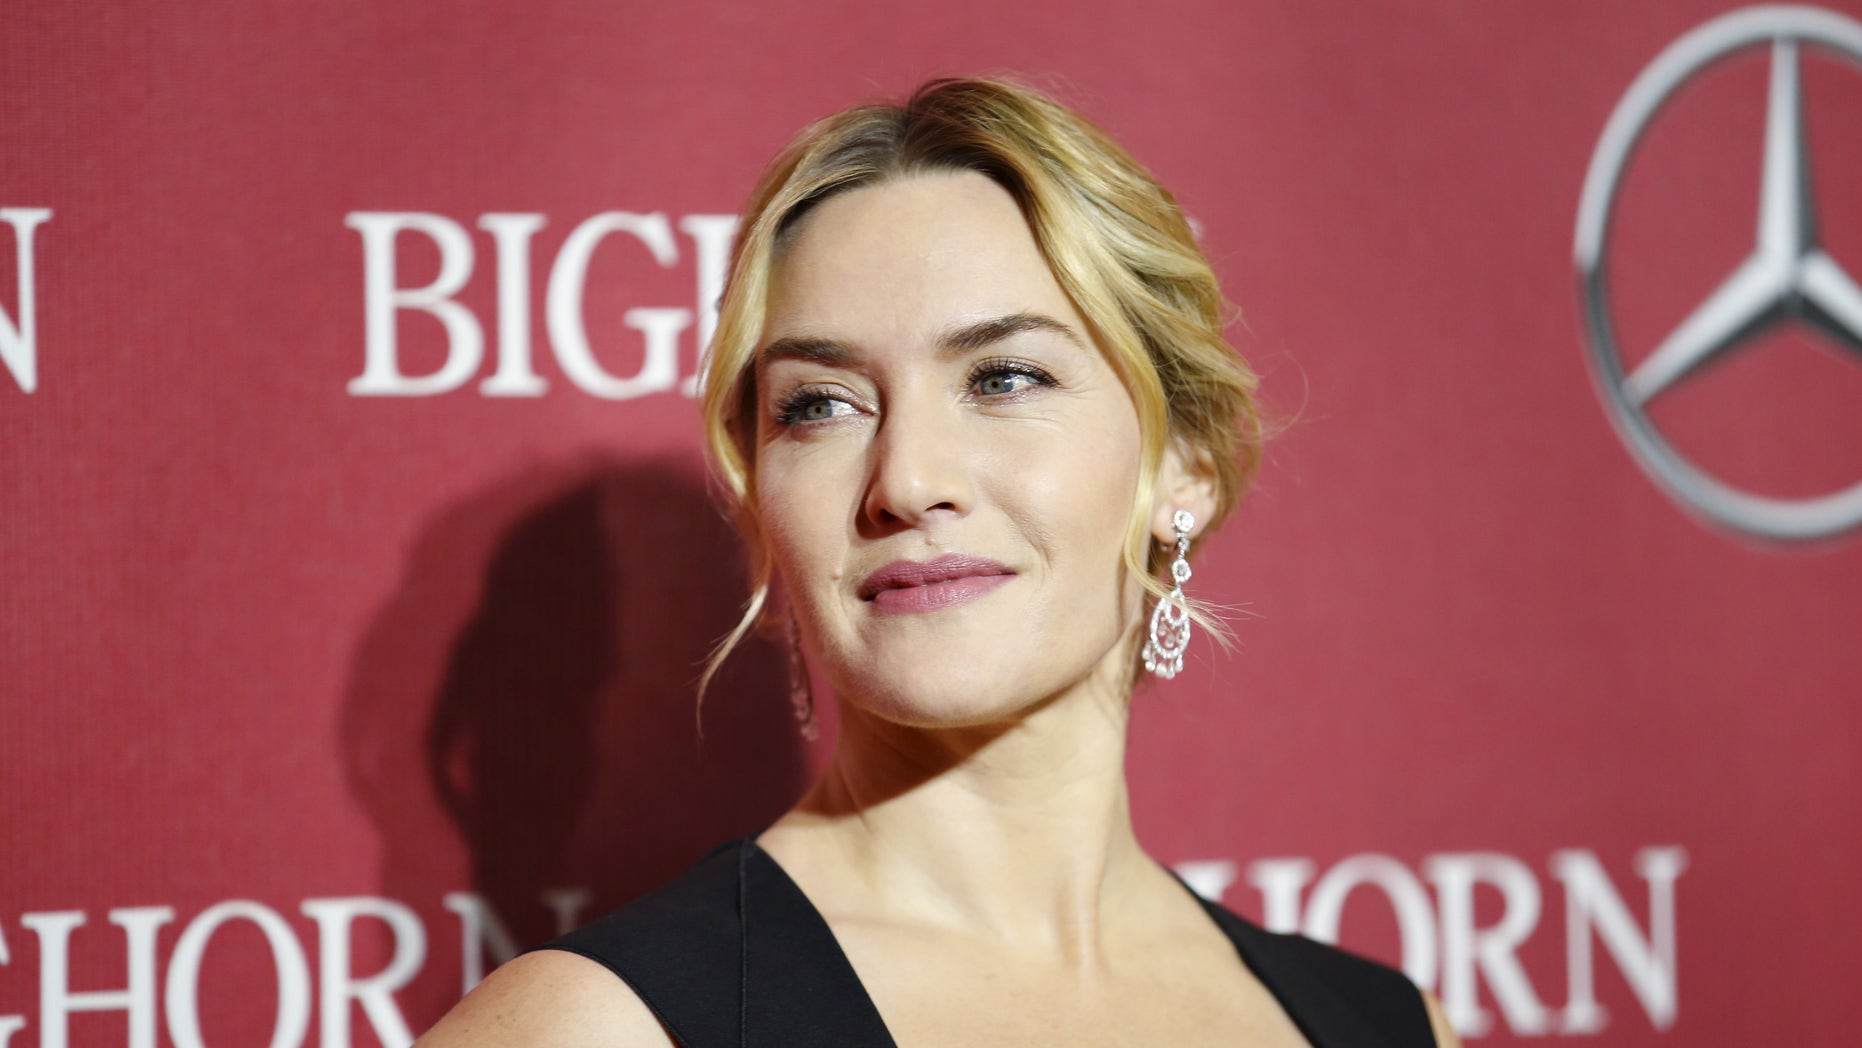 Actress Kate Winslet poses at the 27th Annual Palm Springs International Film Festival Awards Gala in Palm Springs, California, January 2, 2016. REUTERS/Danny Moloshok - RTX20U4Q